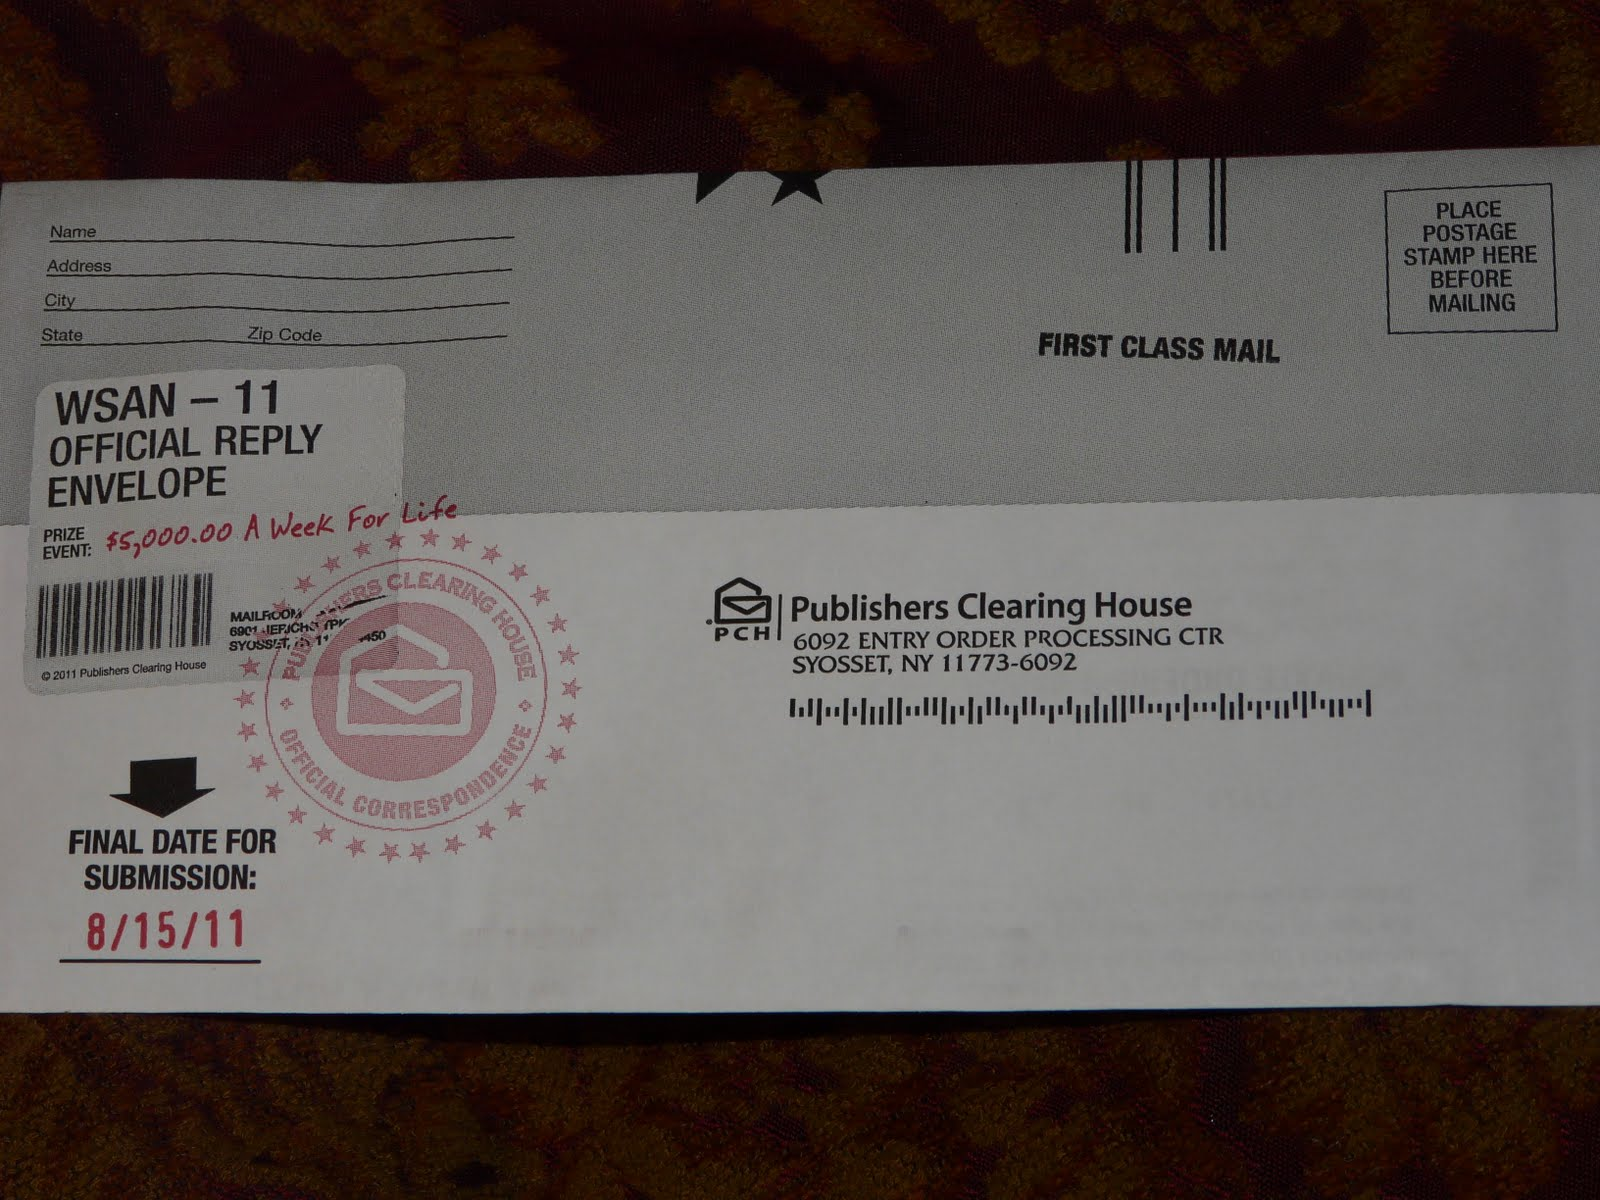 How Does Publishers Clearing House Contact Winners